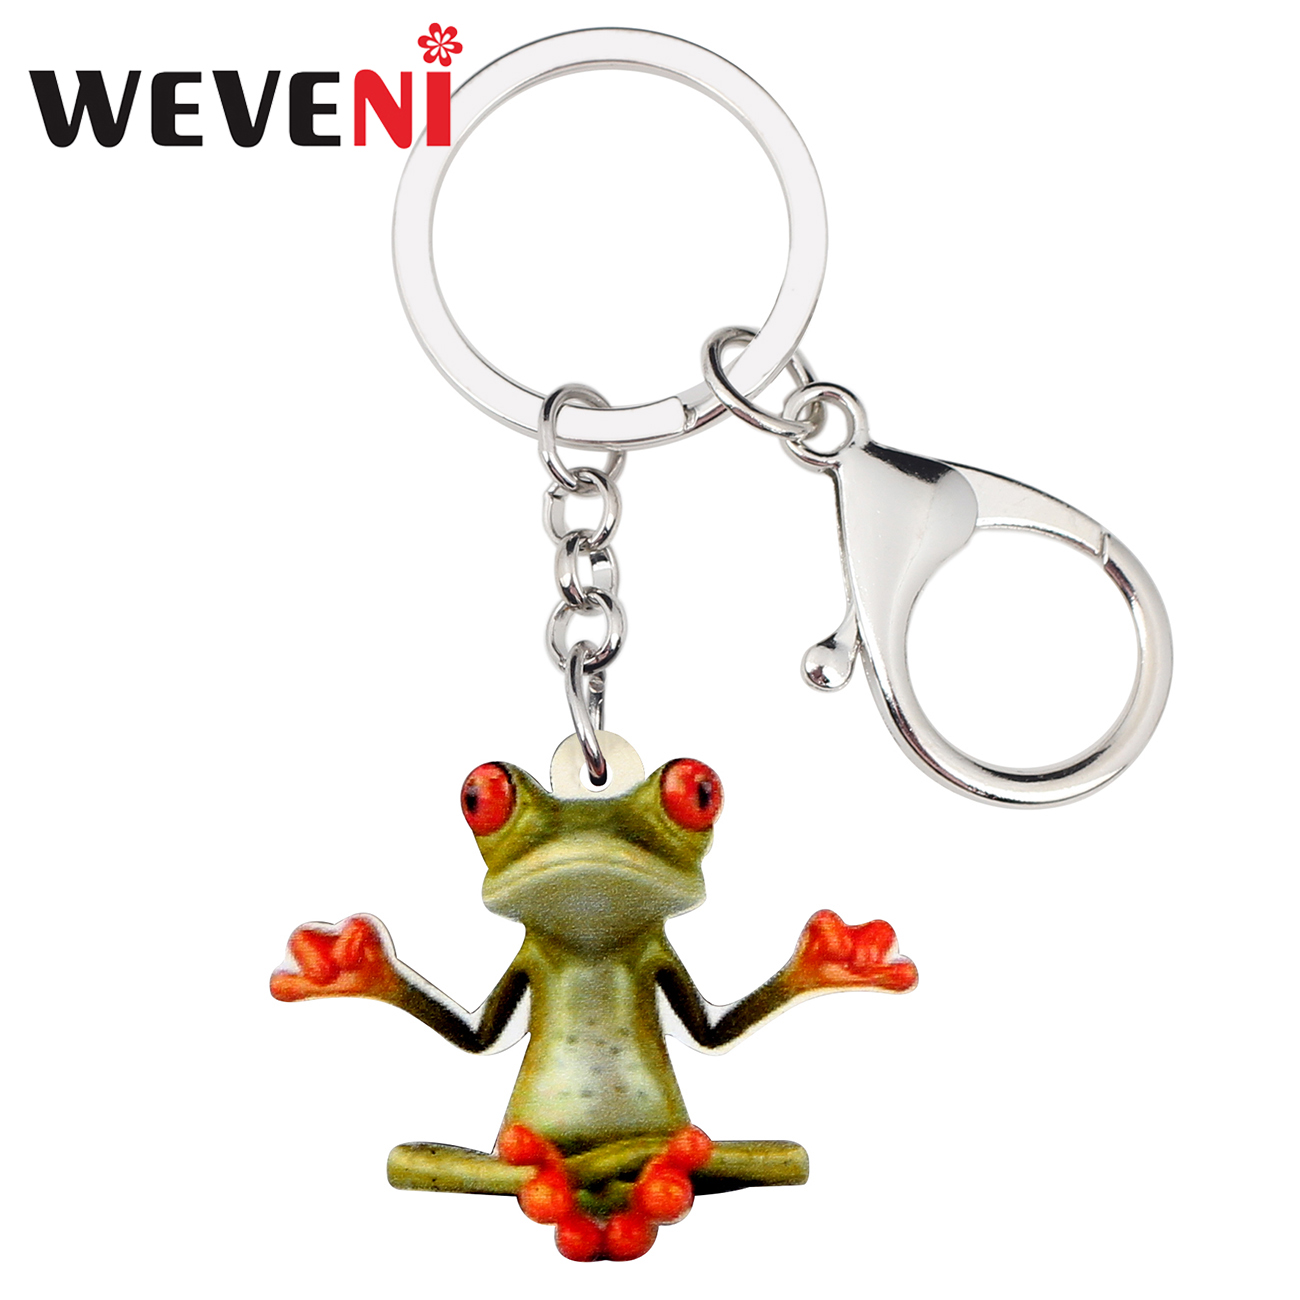 WEVENI Acrylic Meditation Frog Key Chains Keychain Holder Anime Animal Jewelry For Women Girls Bag Car Purse Charms Gift Pendant